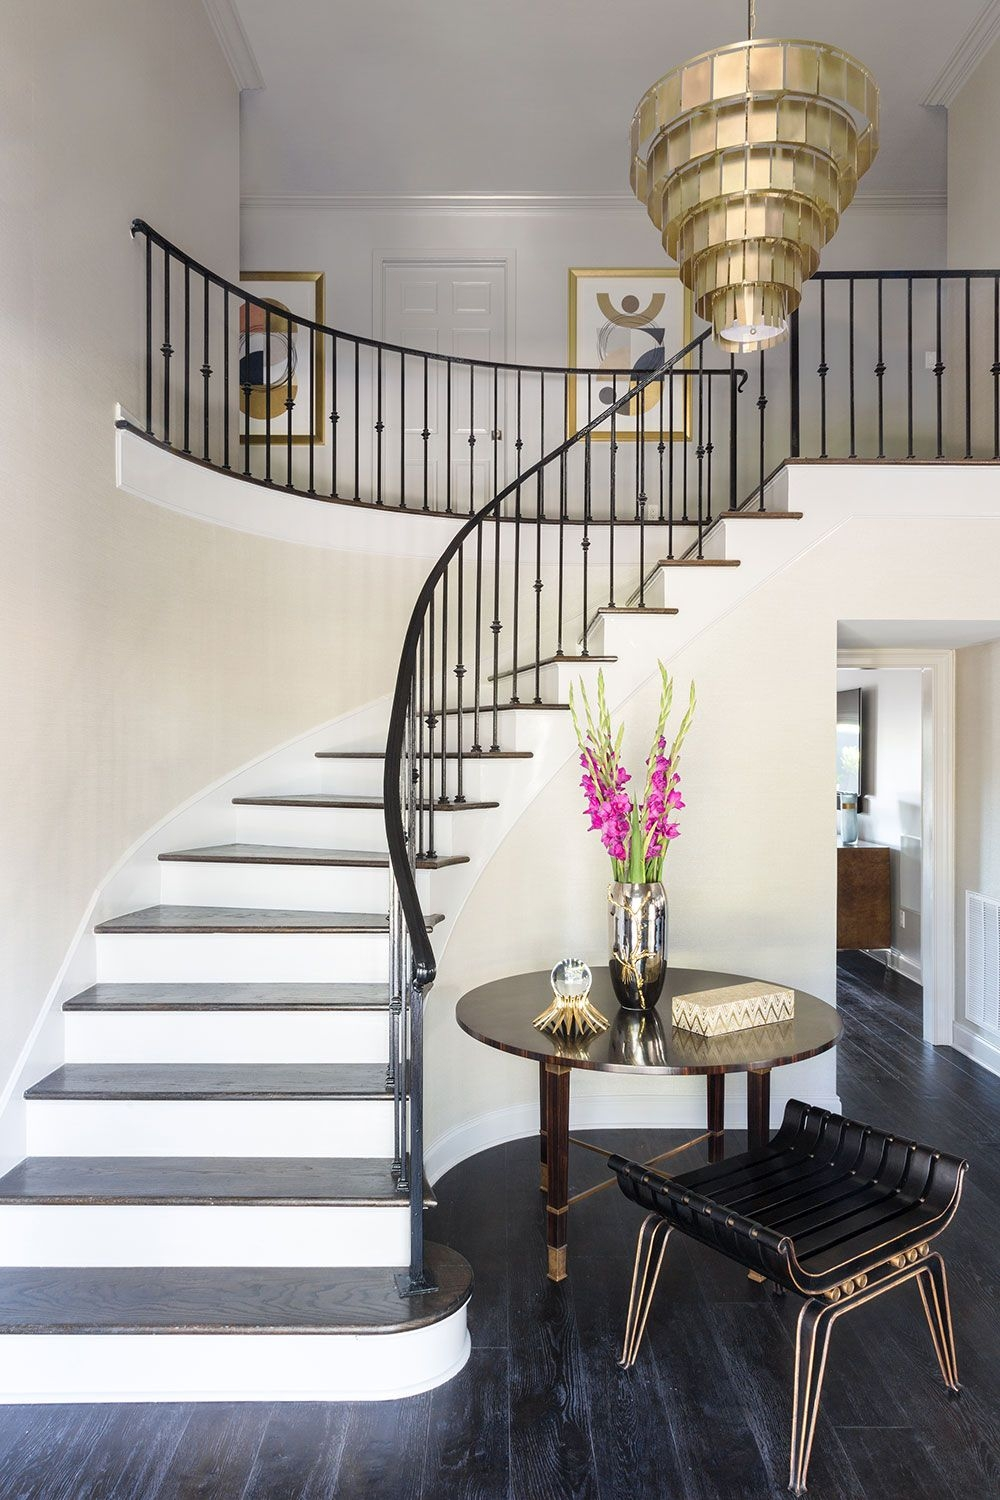 25 Pretty Painted Stair Ideas Creative Ways To Paint A Staircase   House Inner Steps Design   Staircase Window   Bungalow   House Plan   Duplex Shop   Limited Space Small Stair